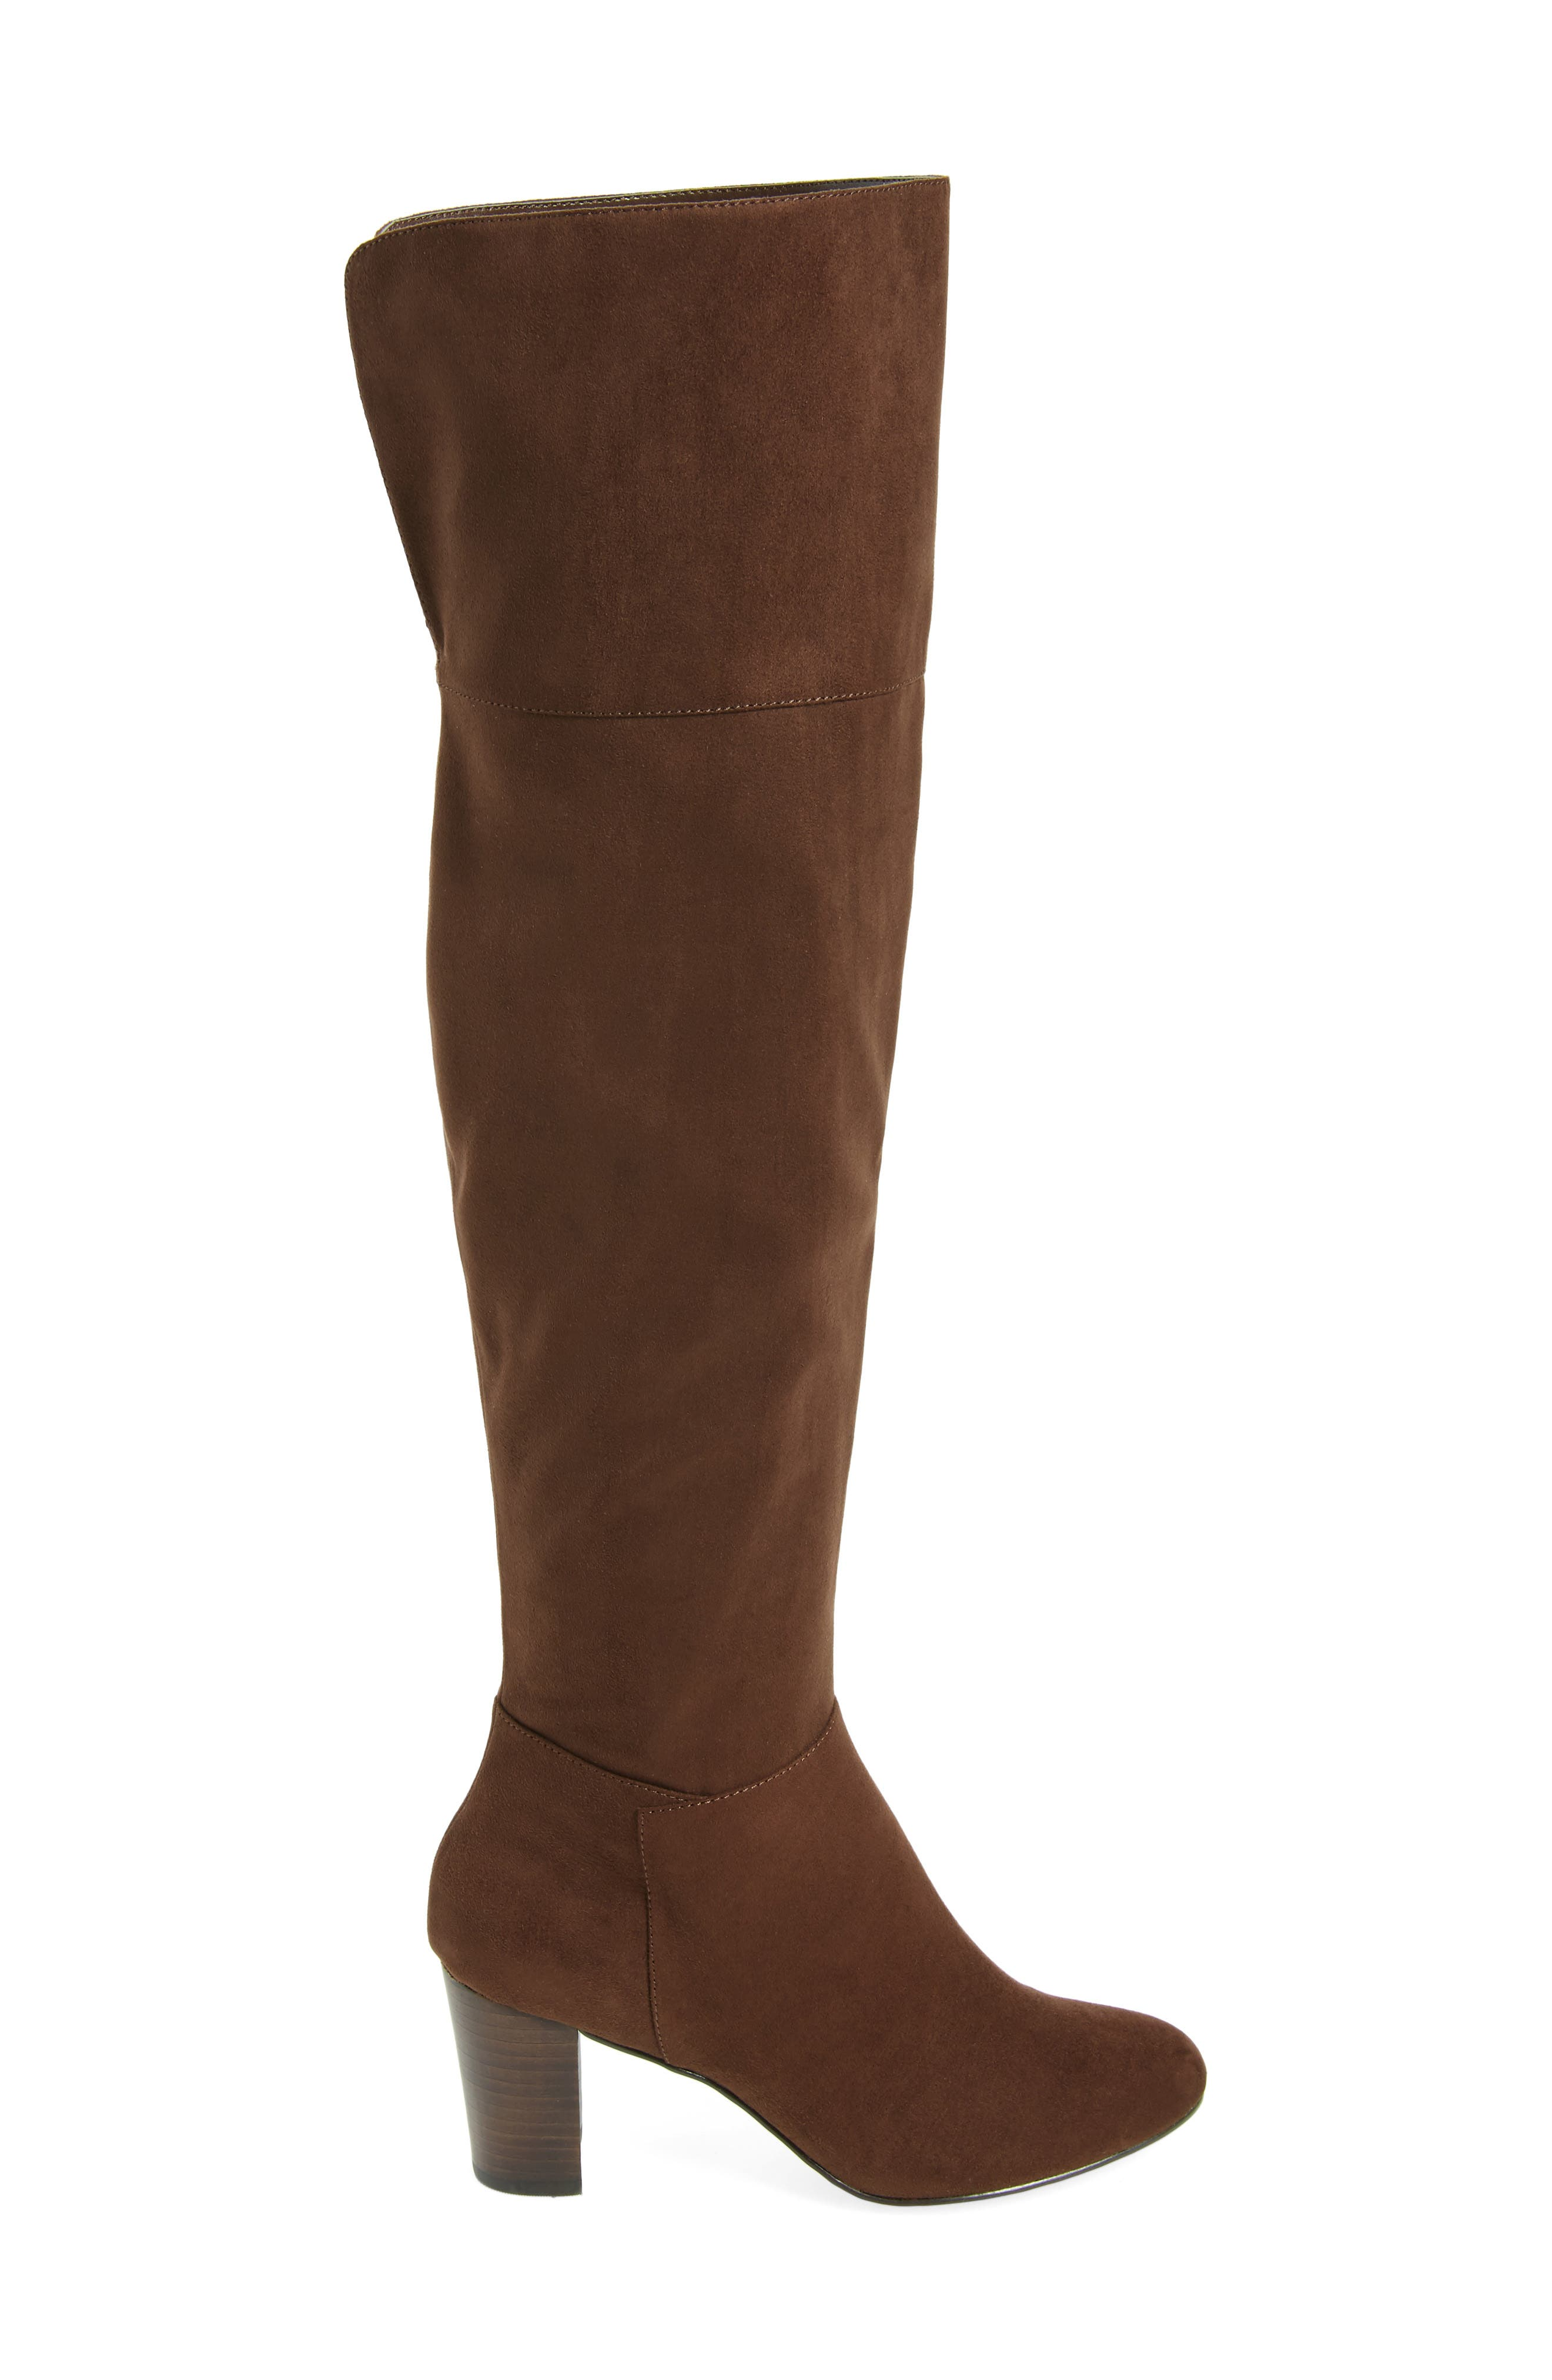 Telluride II Over the Knee Boot,                             Alternate thumbnail 8, color,